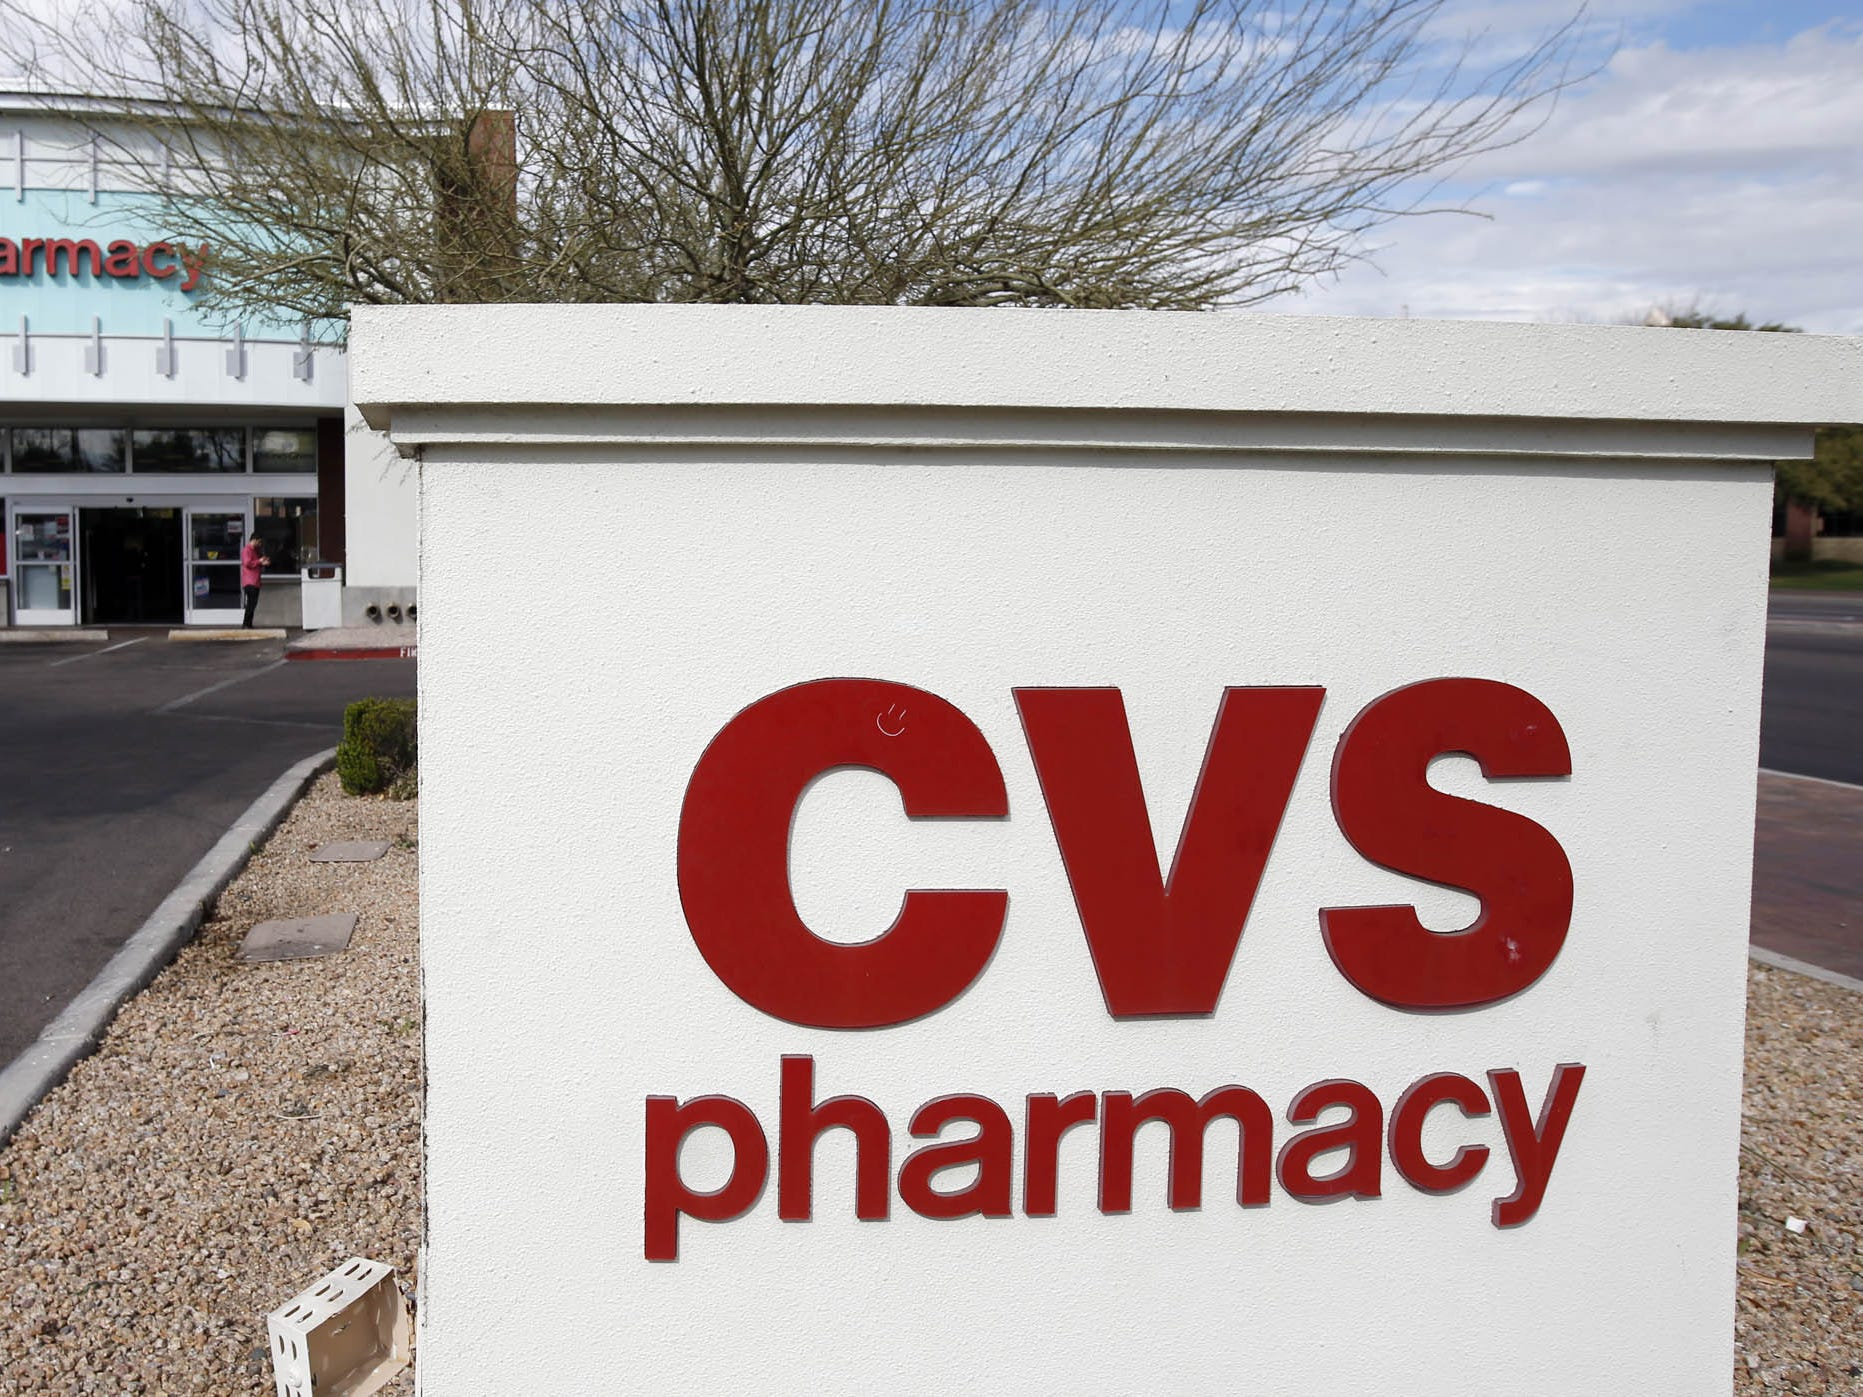 CVS Health, hiring 1,100. The company operates pharmacies and retail centers across the country. Locations in metro Phoenix, Tucson, Prescott, Lake Havasu City and Yuma have openings. More info: jobs.cvshealth.com.